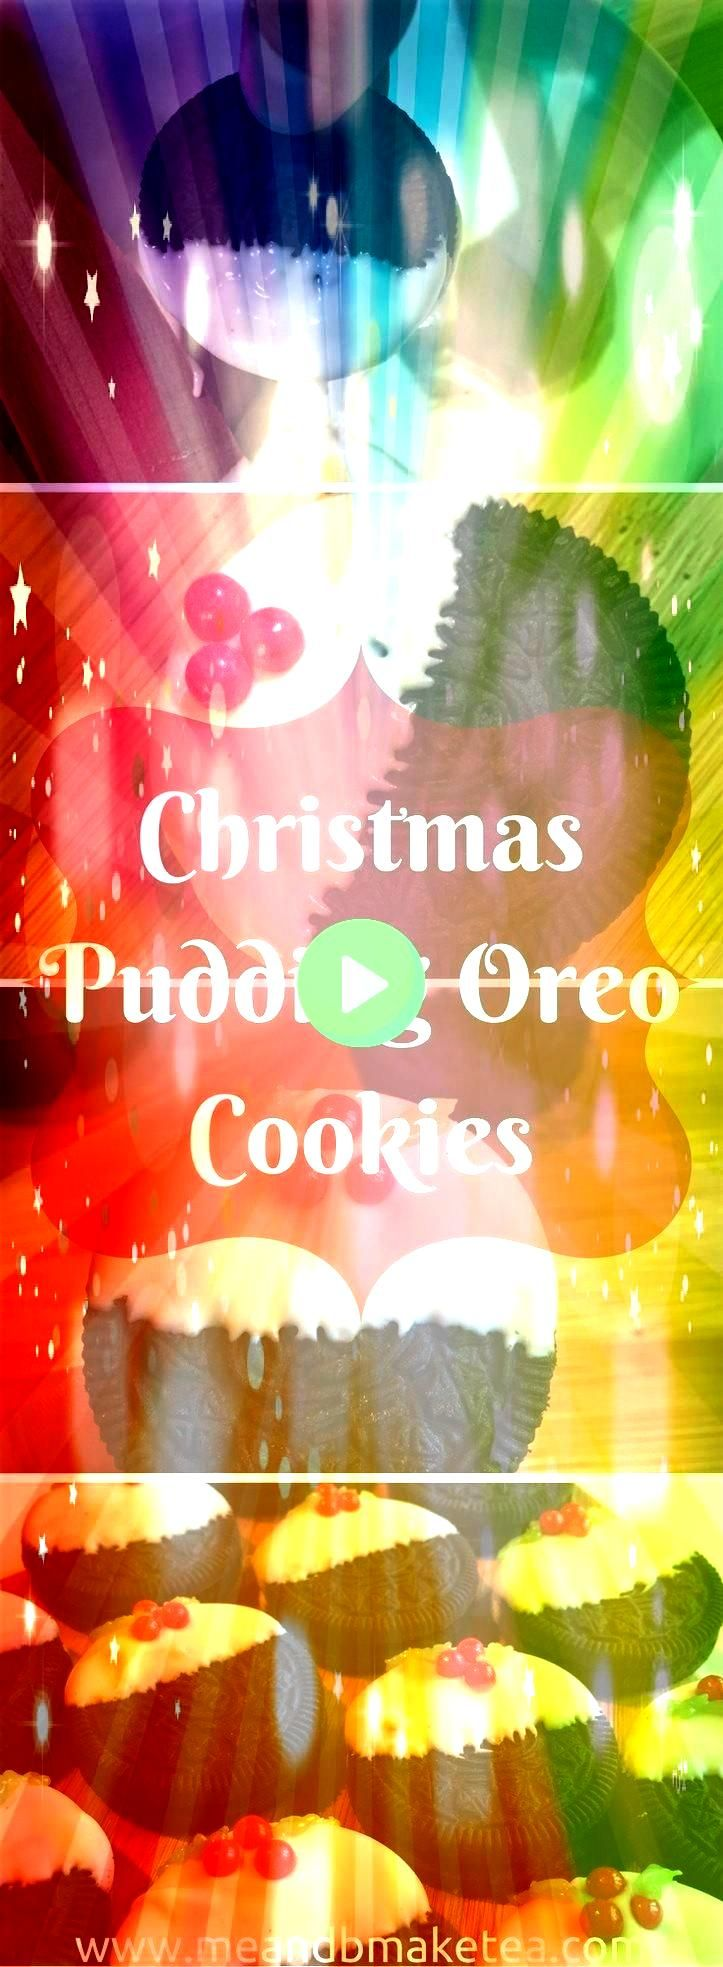 NoBake Christmas Pudding Oreo Cookies Check out these cute no bake oreo christmas pudding cookies they are super quick and easy to make the perfect festive recipe Take a...